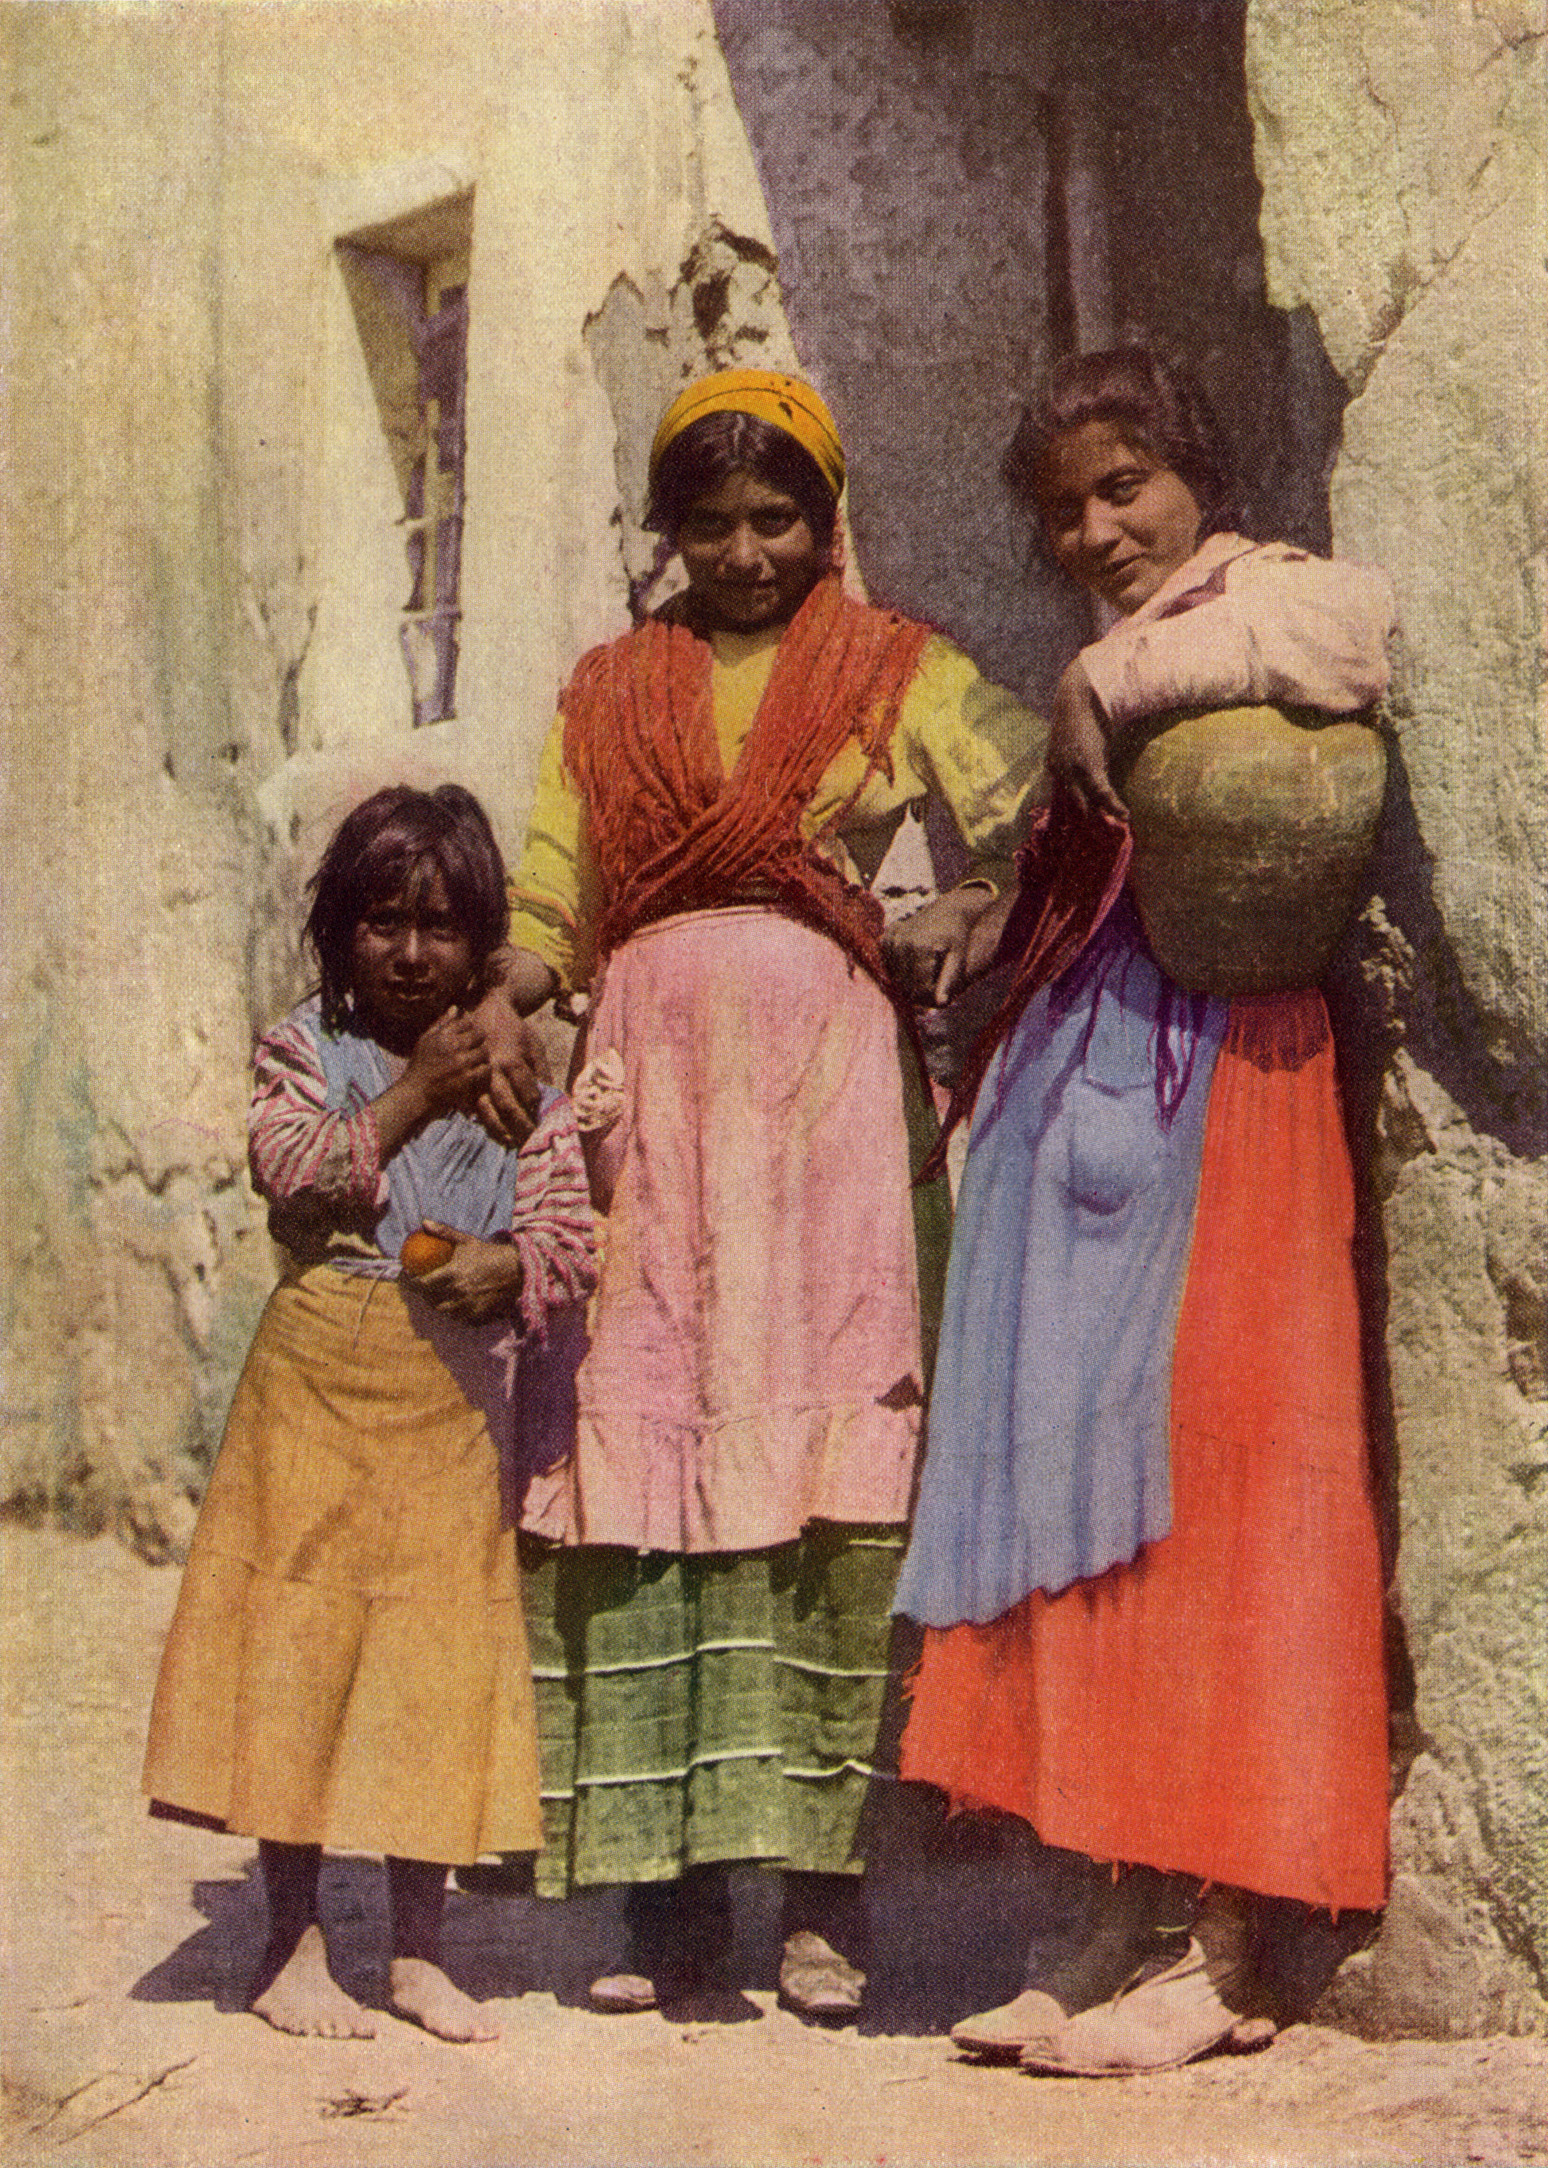 http://upload.wikimedia.org/wikipedia/commons/1/18/Spanish_Gypsy_Girls_NGM-v31-p267.jpg